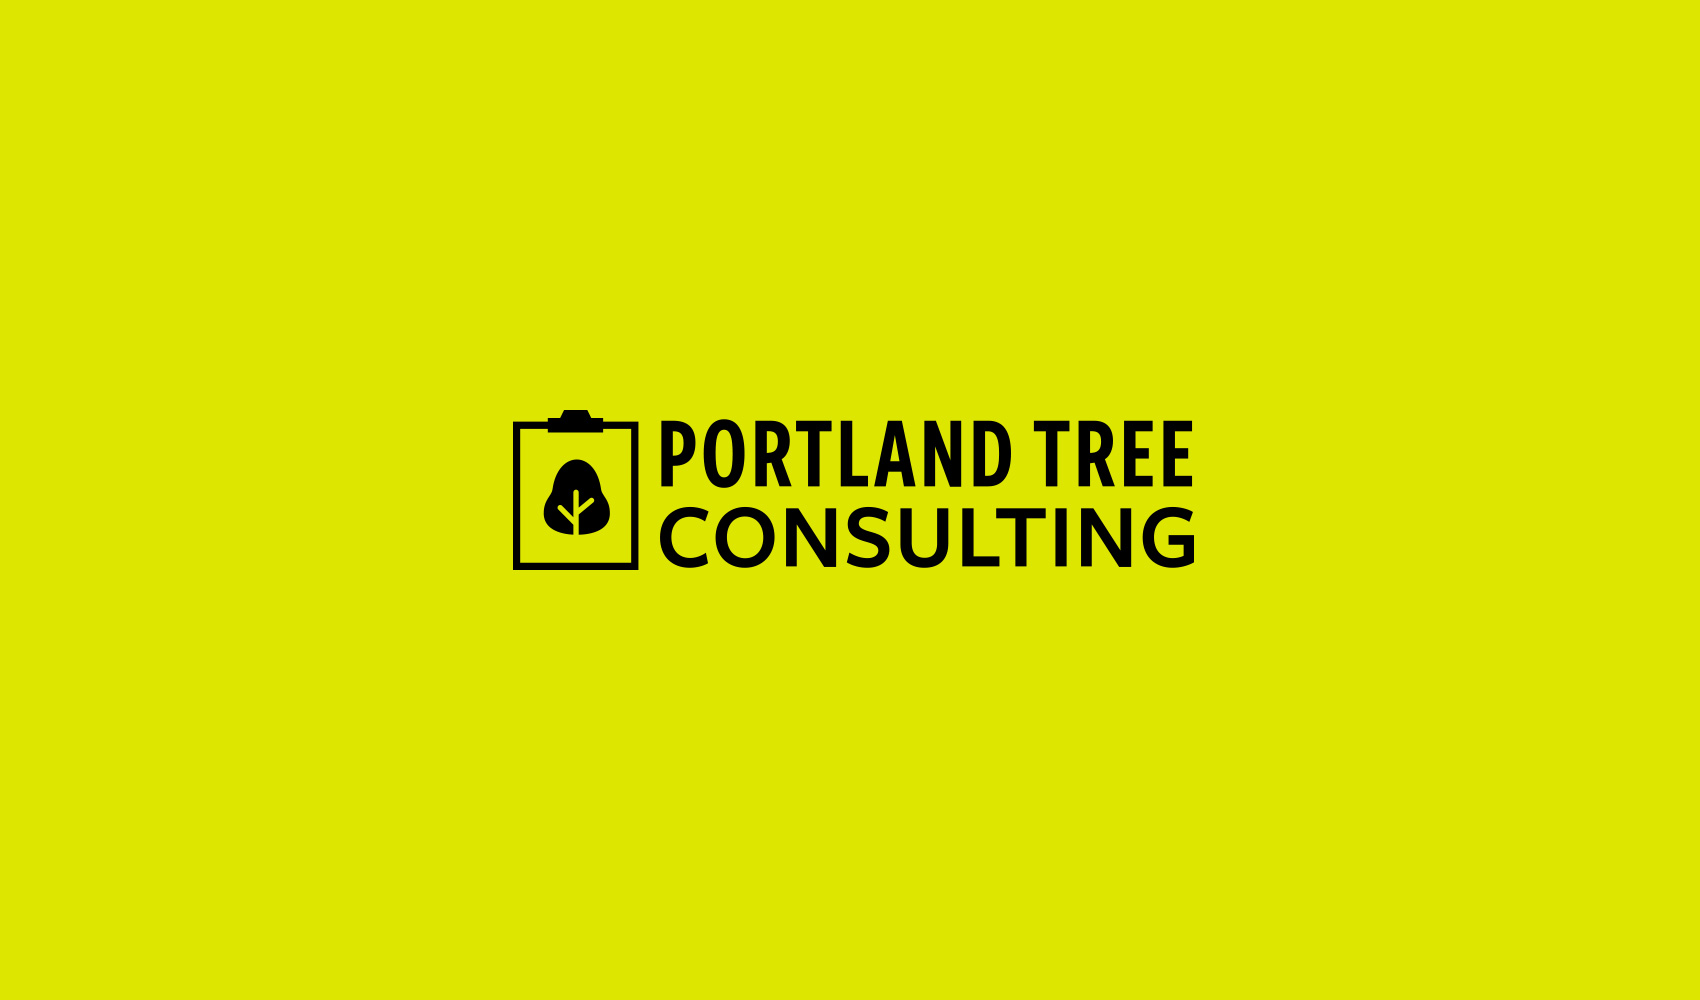 Portland Tree Consulting